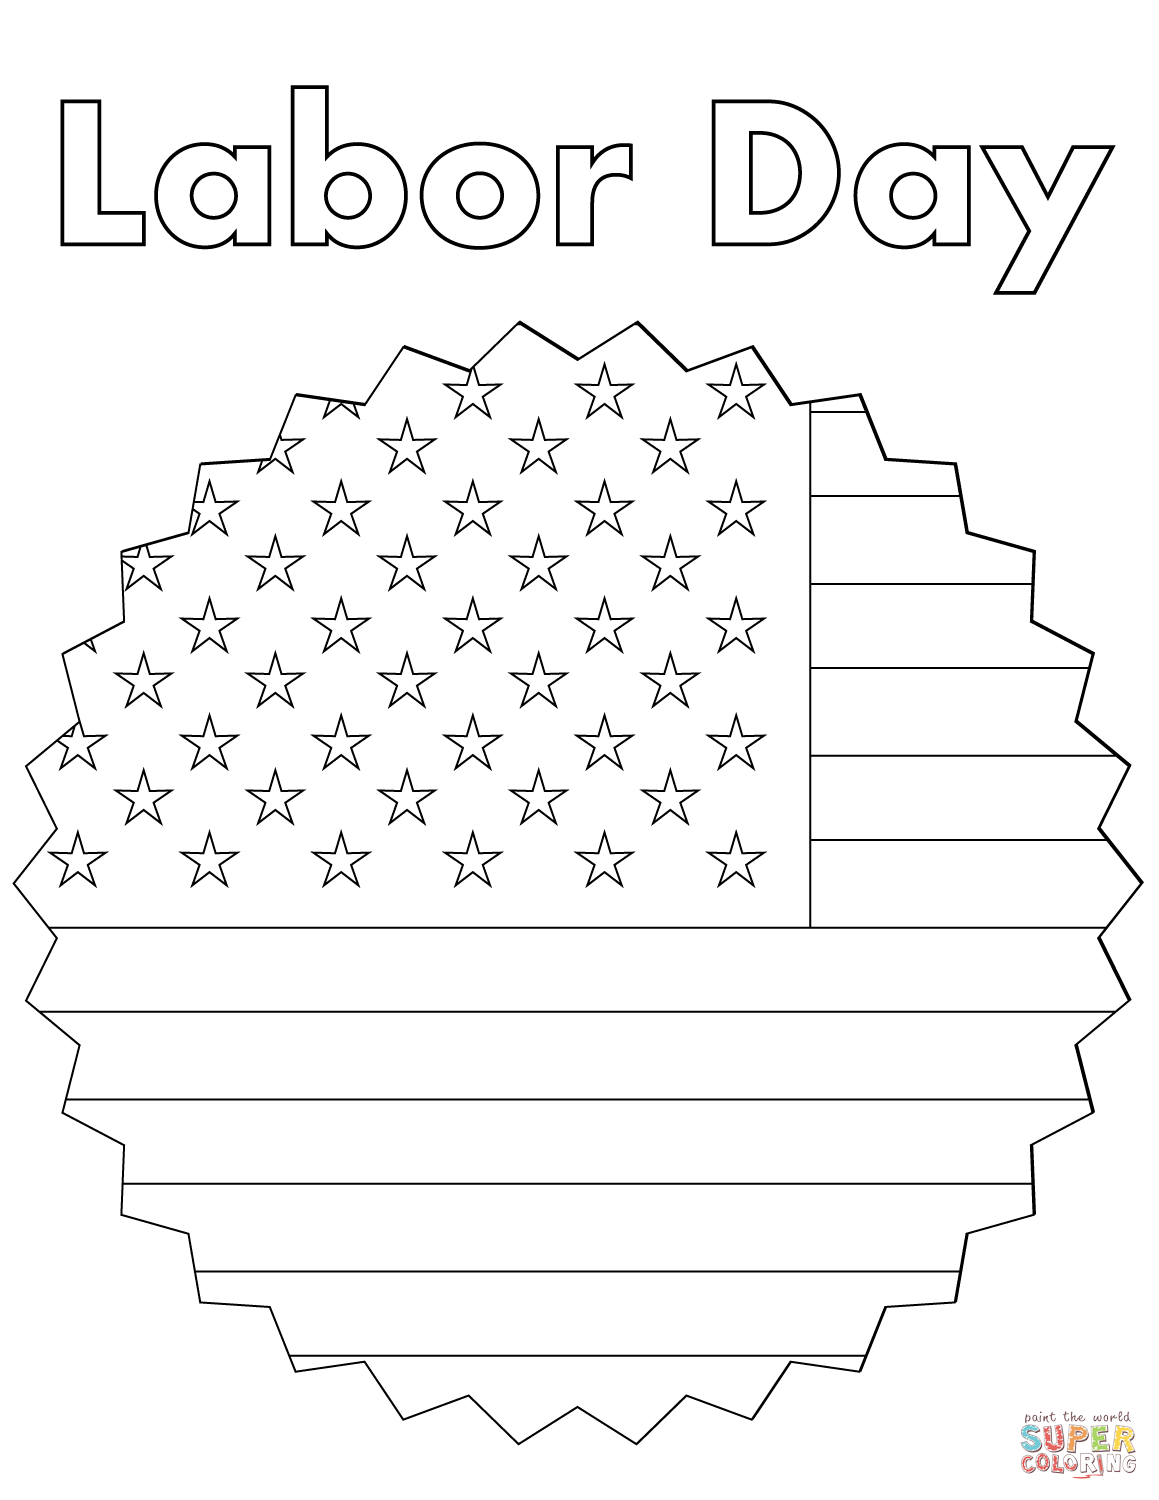 labor day coloring pages free printable labor day coloring pages getcoloringpagescom printable free labor coloring pages day